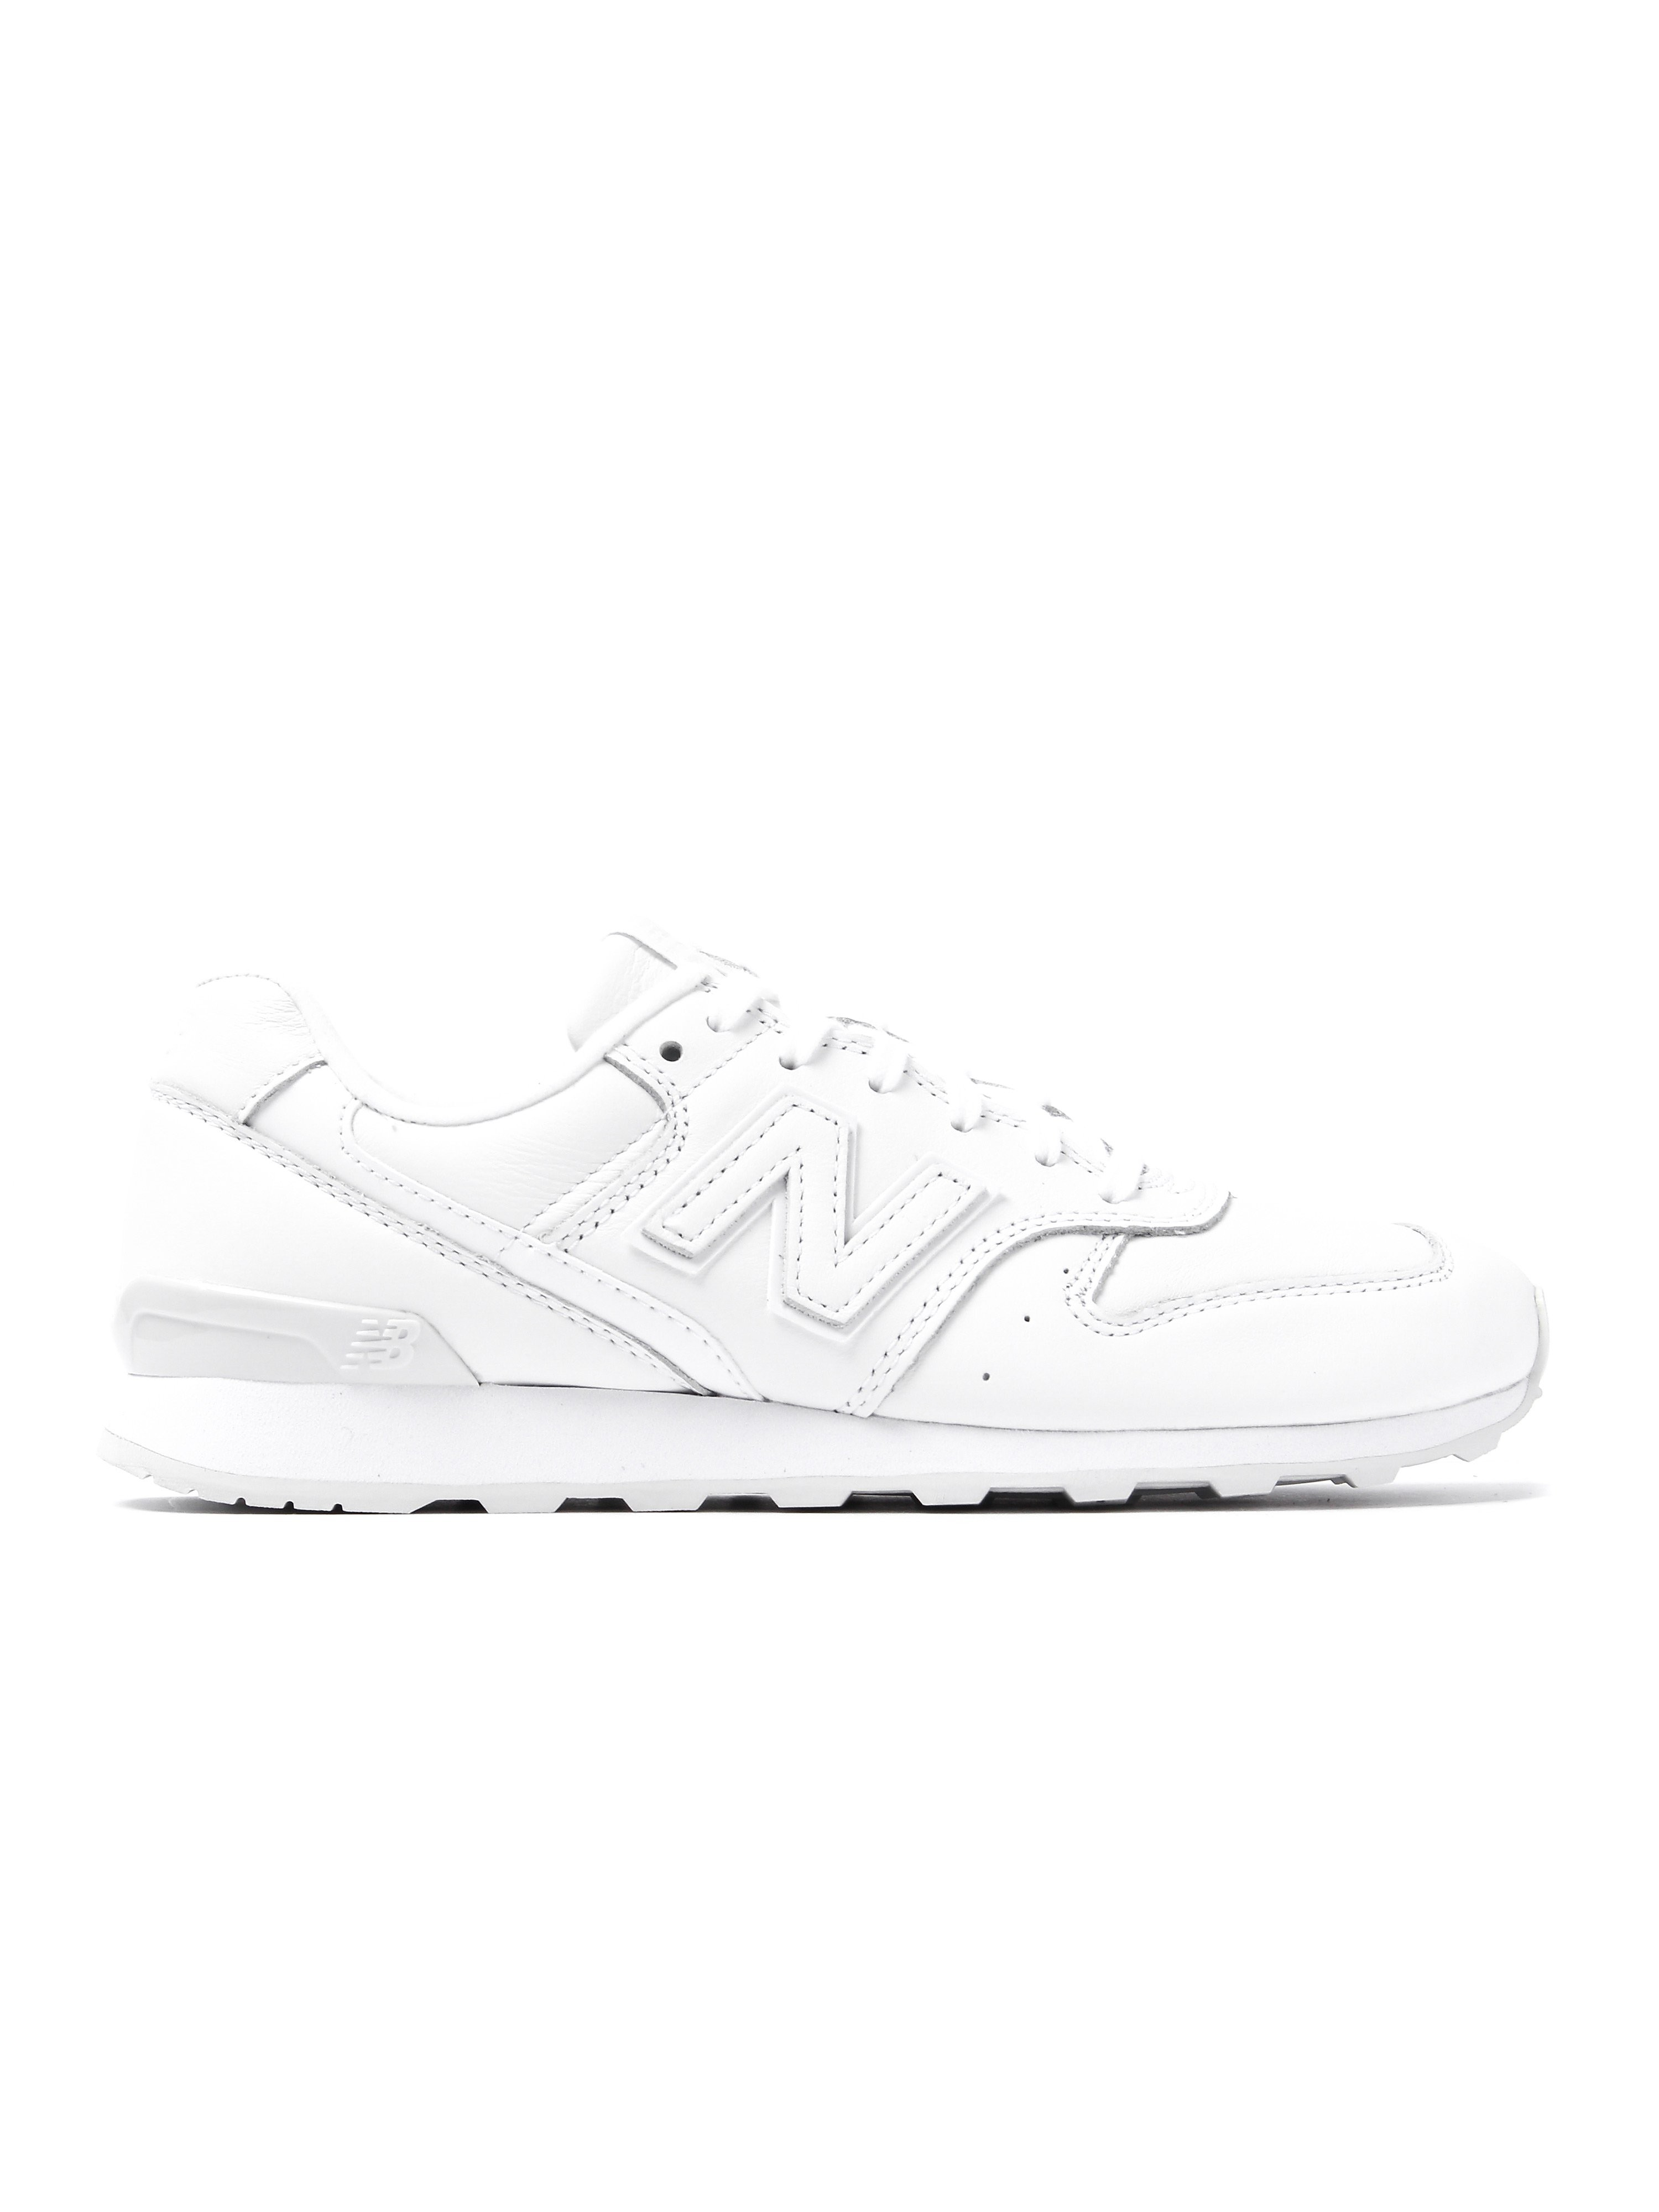 New Balance Women's 996 Low Top Trainers - All White Leather